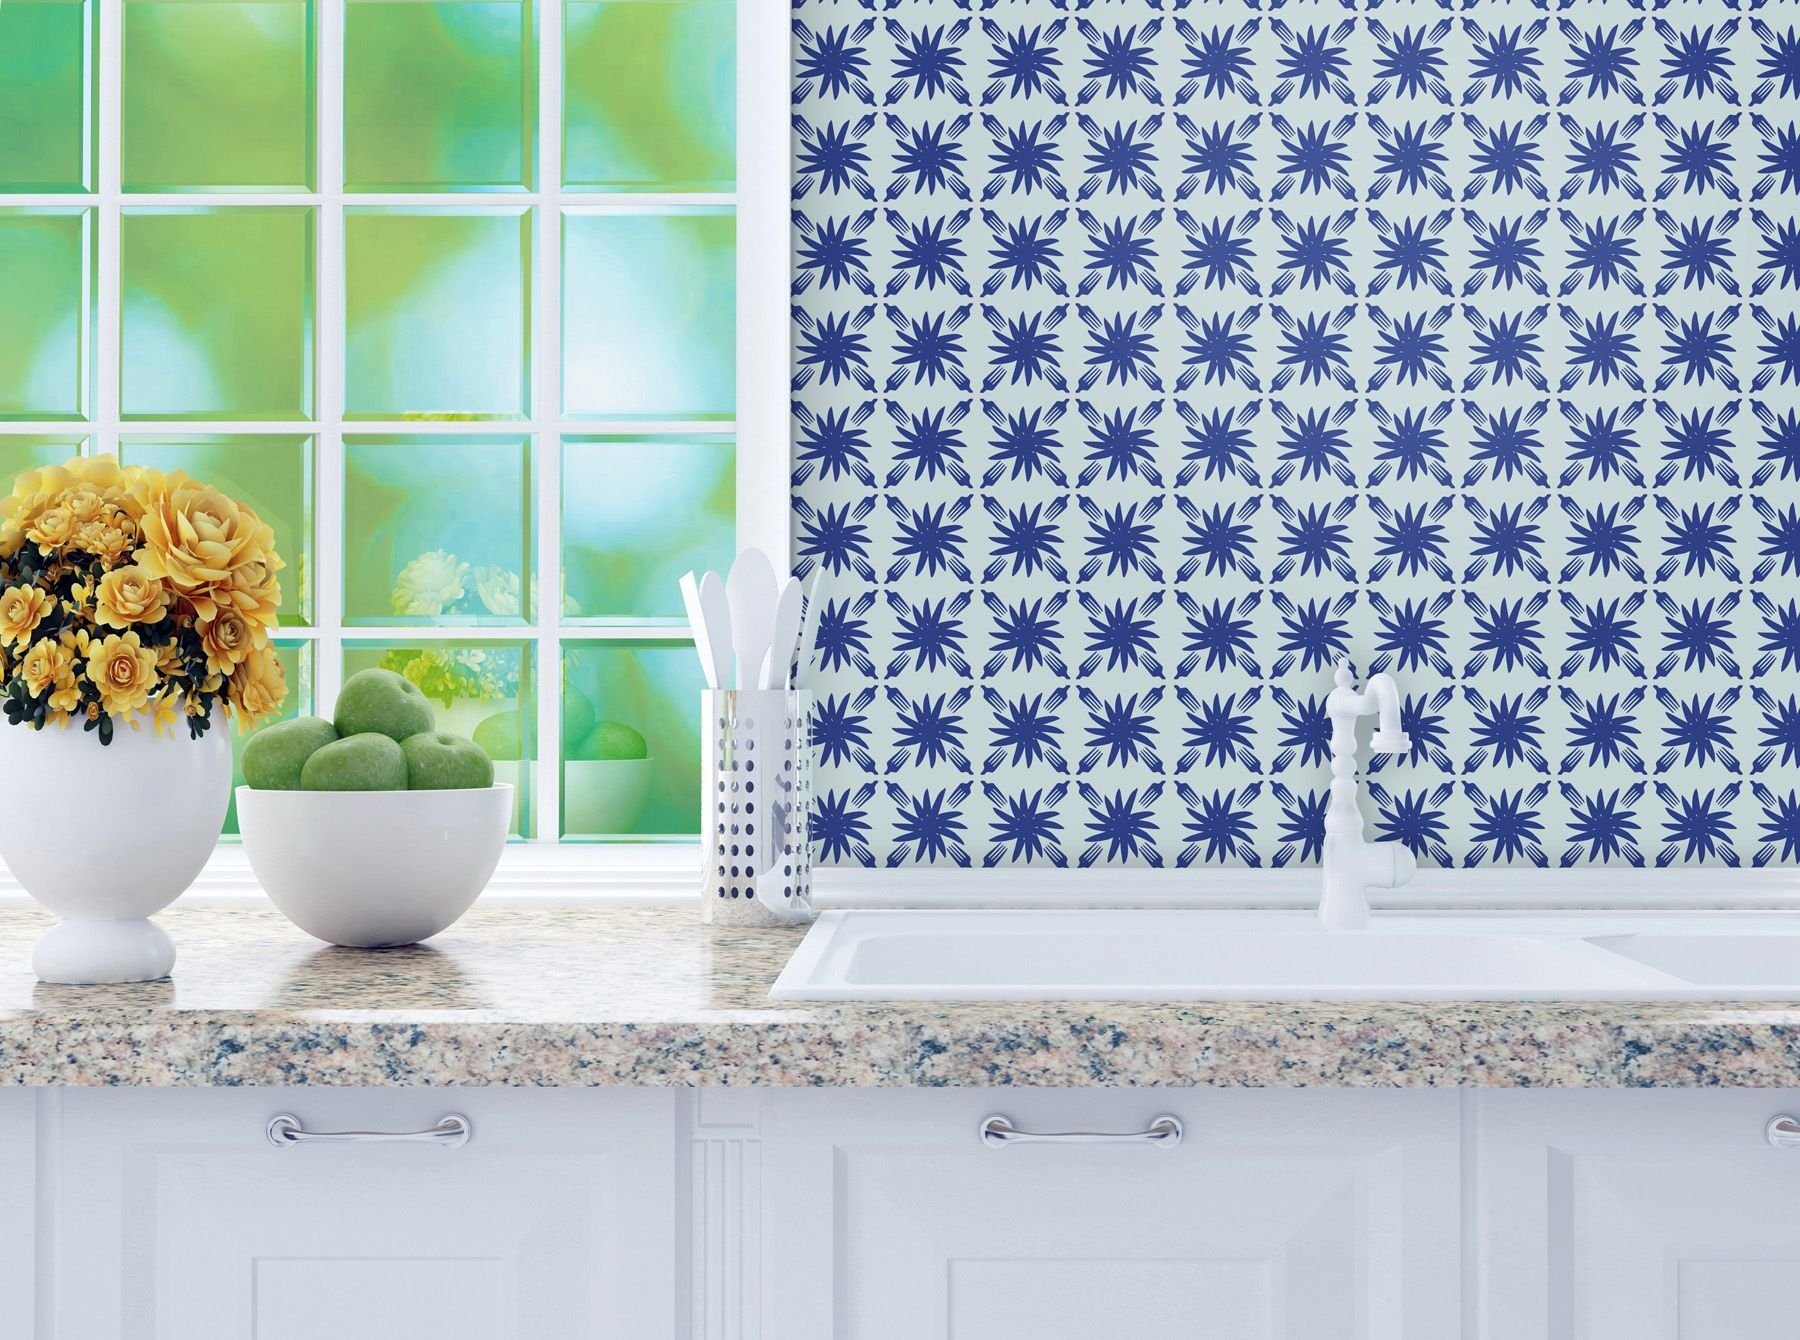 Knife Floral in King Blue | Knives, Tile patterns and Kitchens